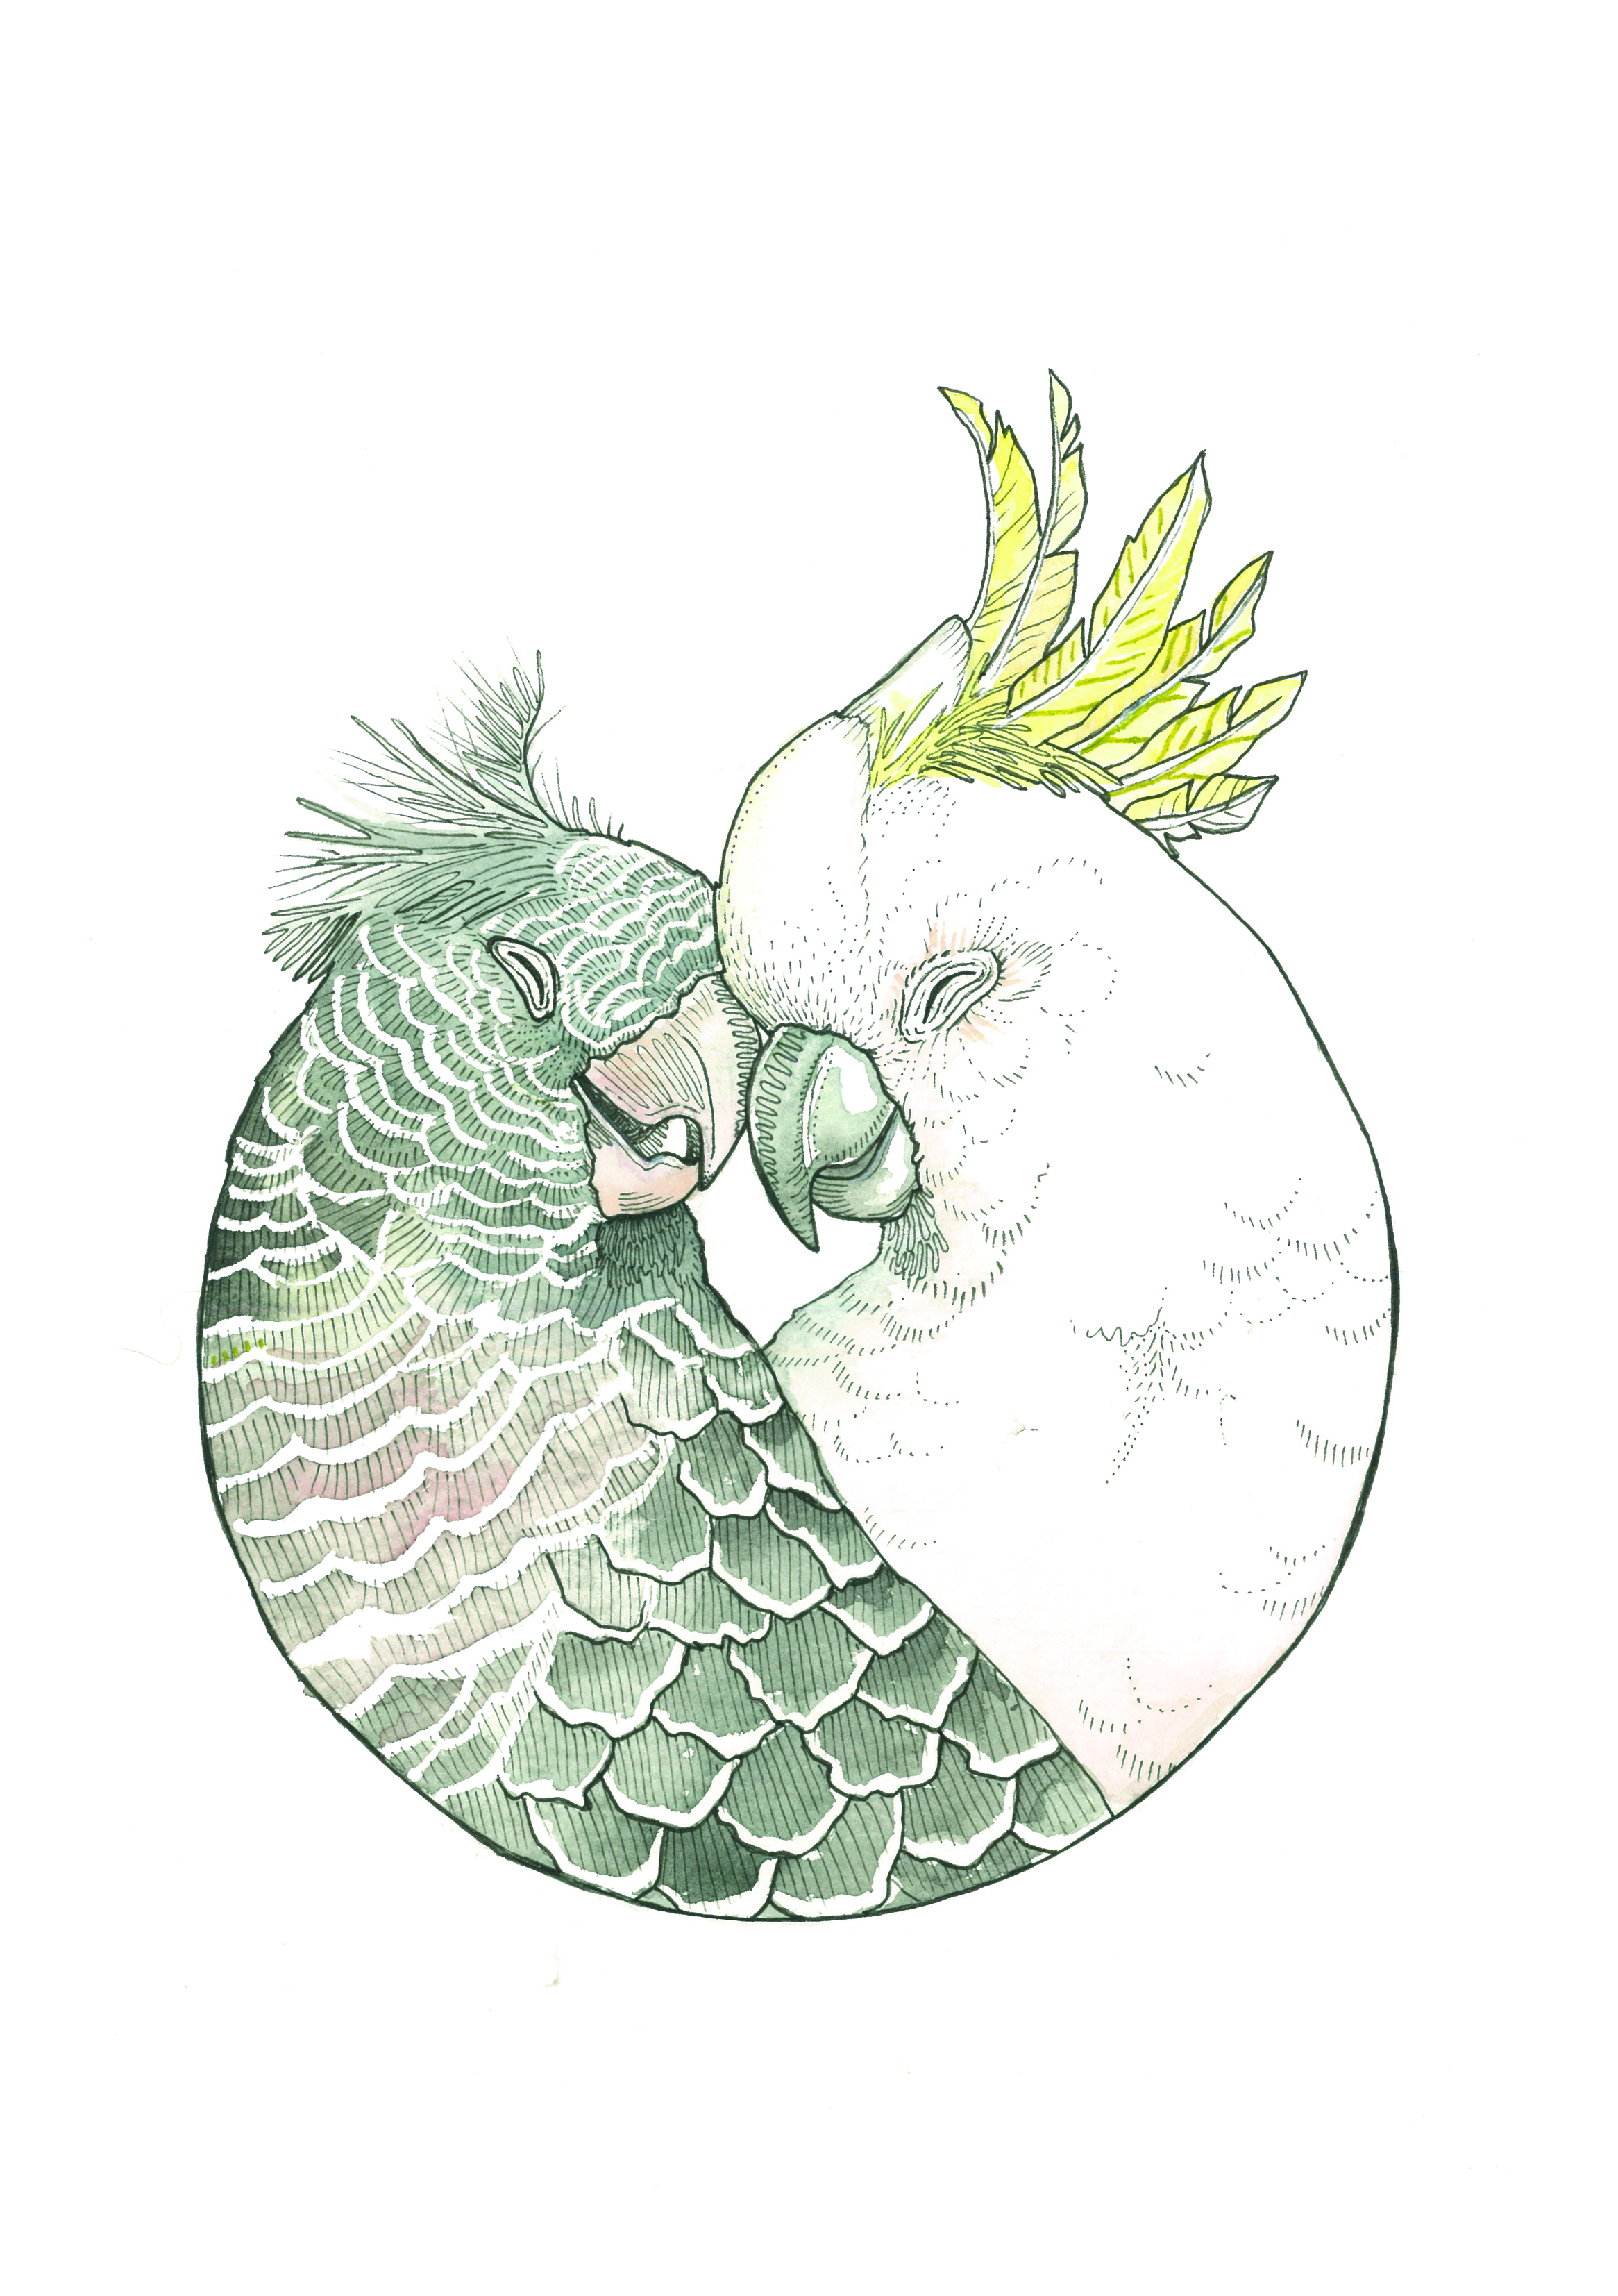 Cockatoo Cuddles 2016 Watercolour and Ink on 100% cotton paper